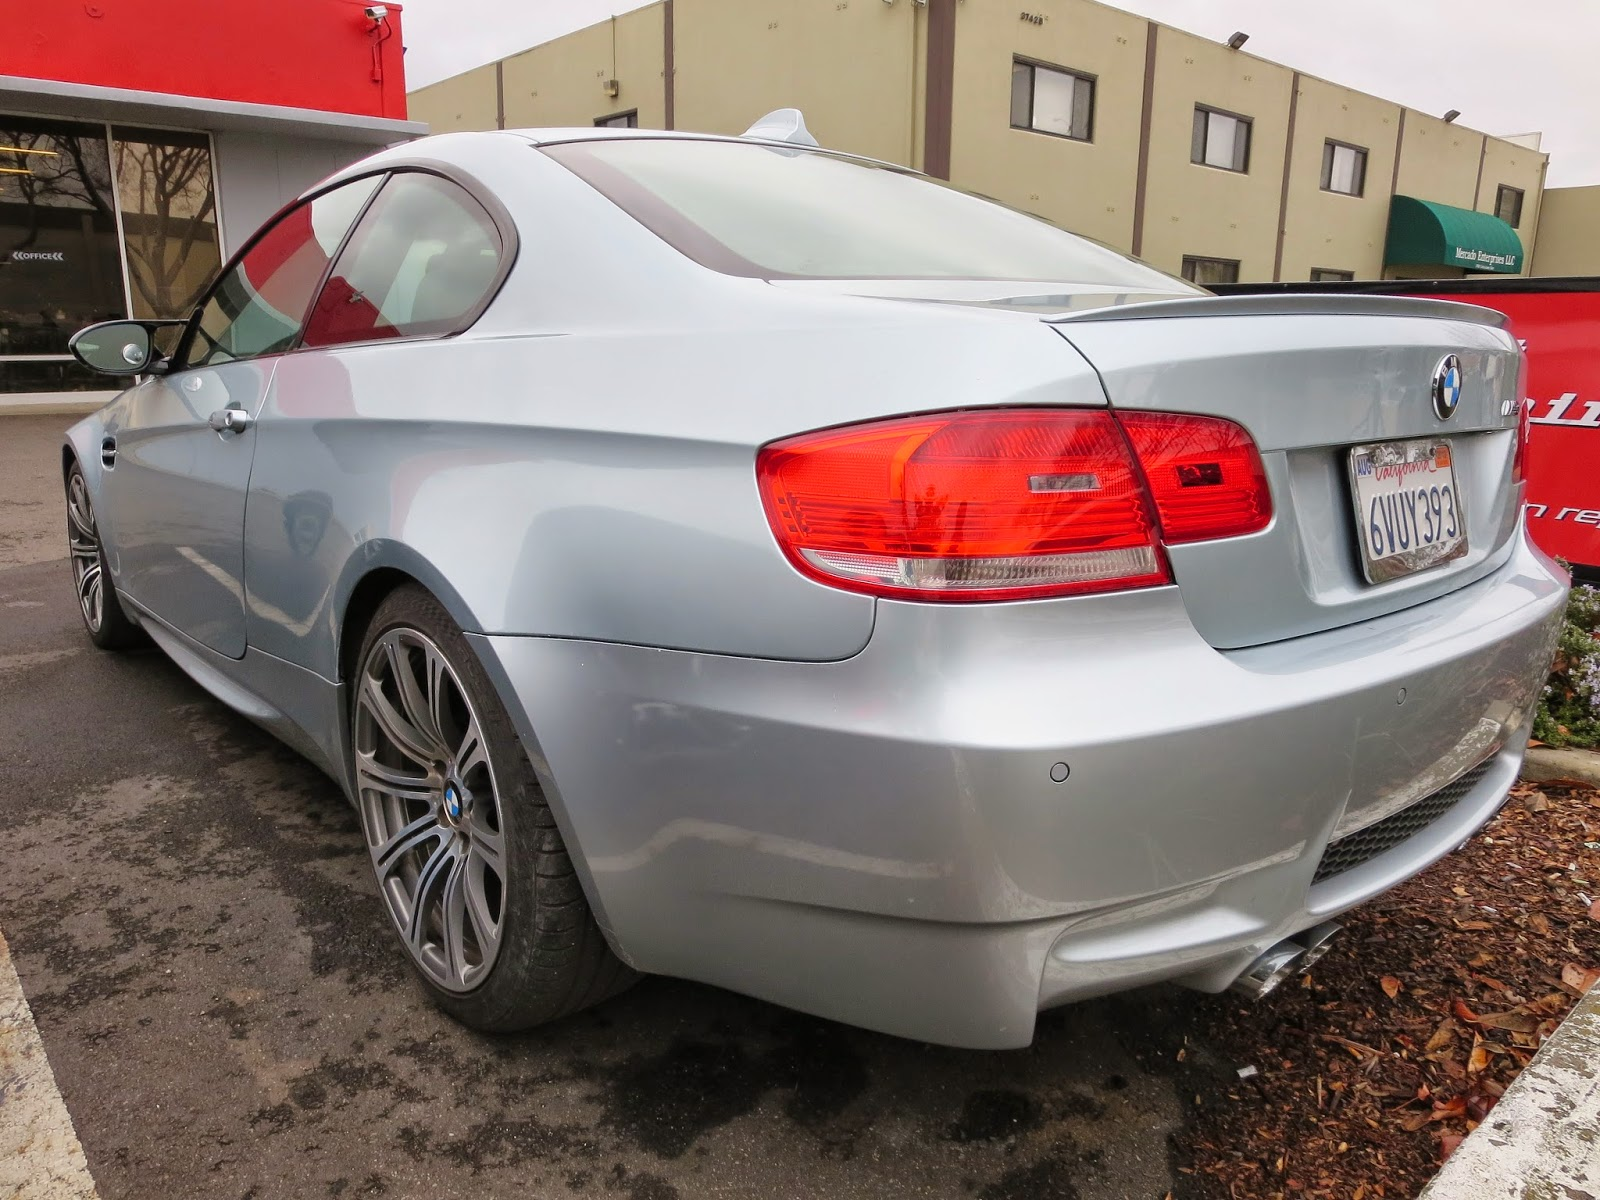 BMW M3 after Collision Repair at Almost Everything Auto Body